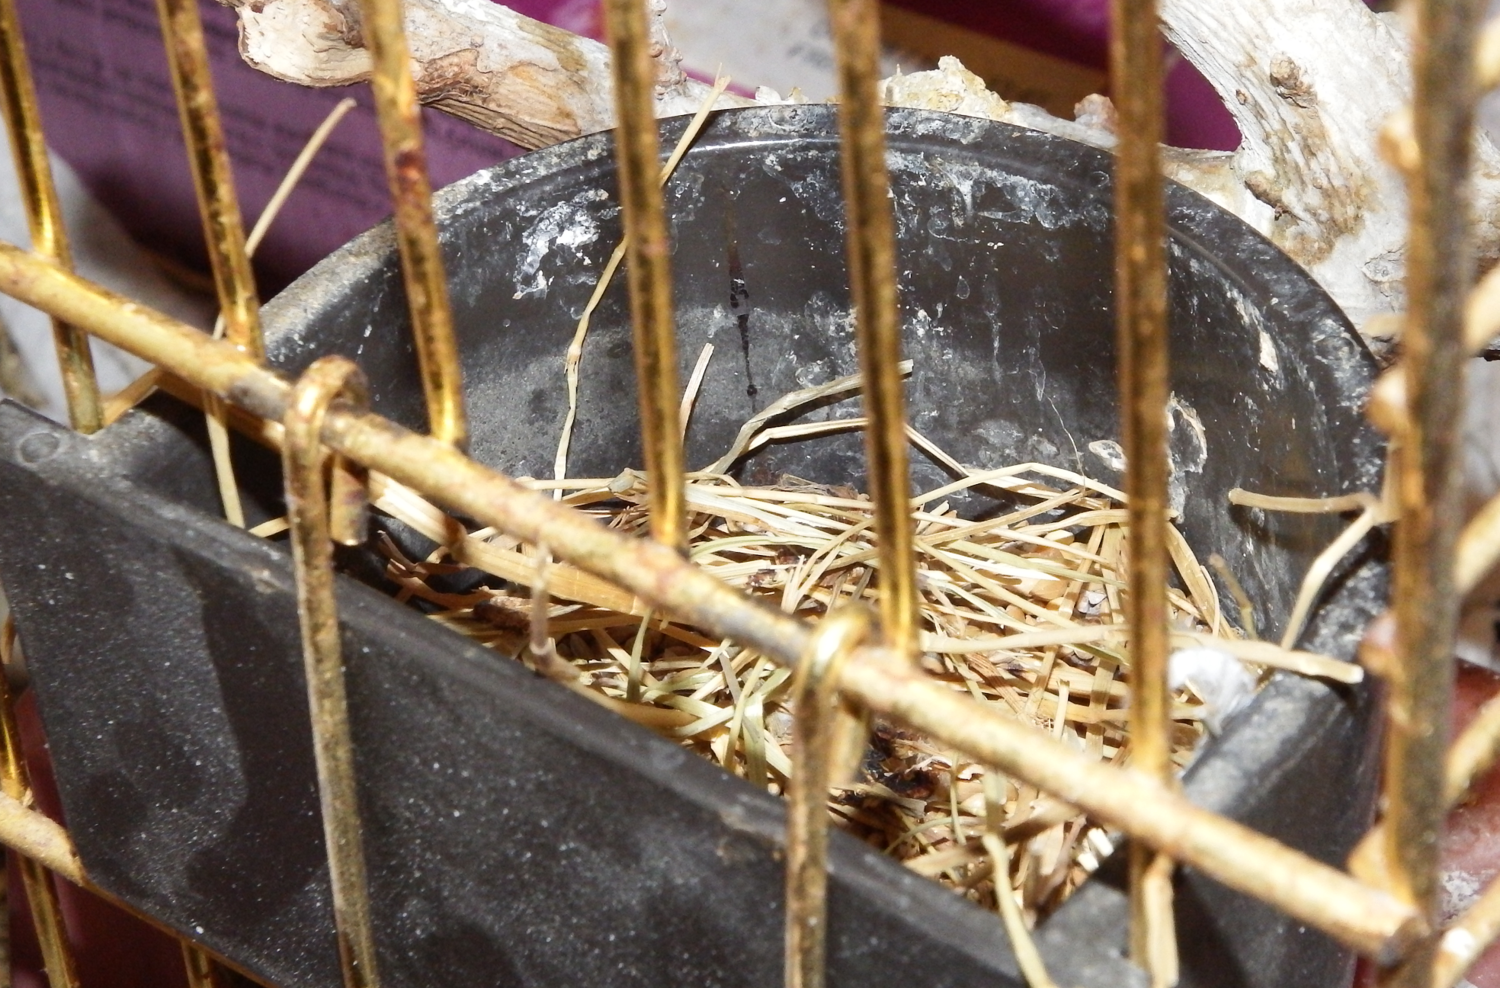 It is me again, and my doves are nesting in their food bowl now.